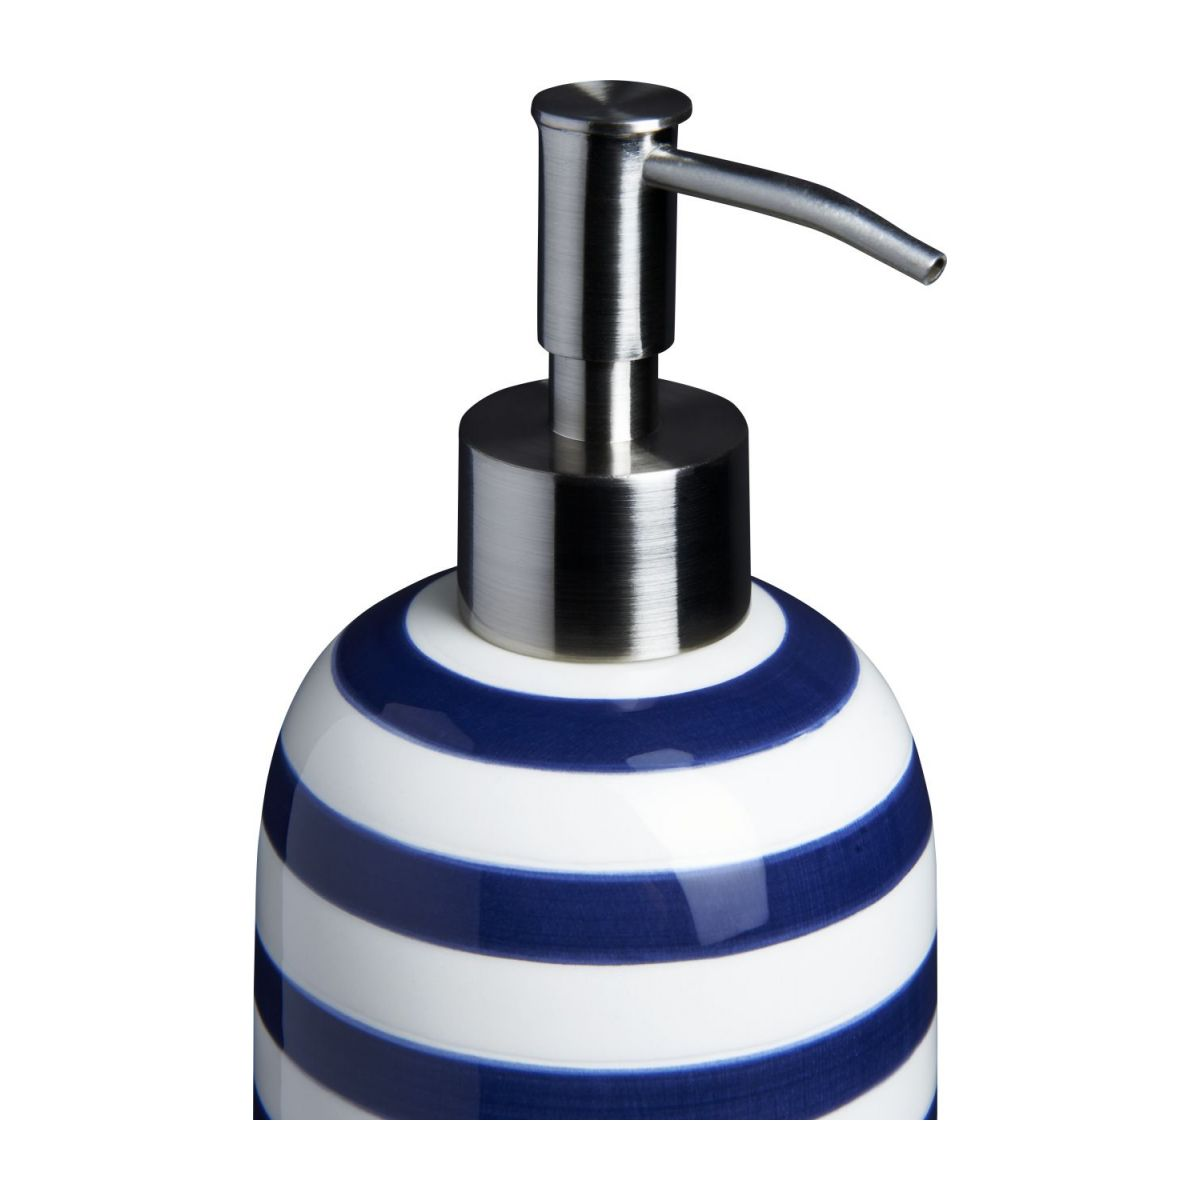 Soap dispenser n°4